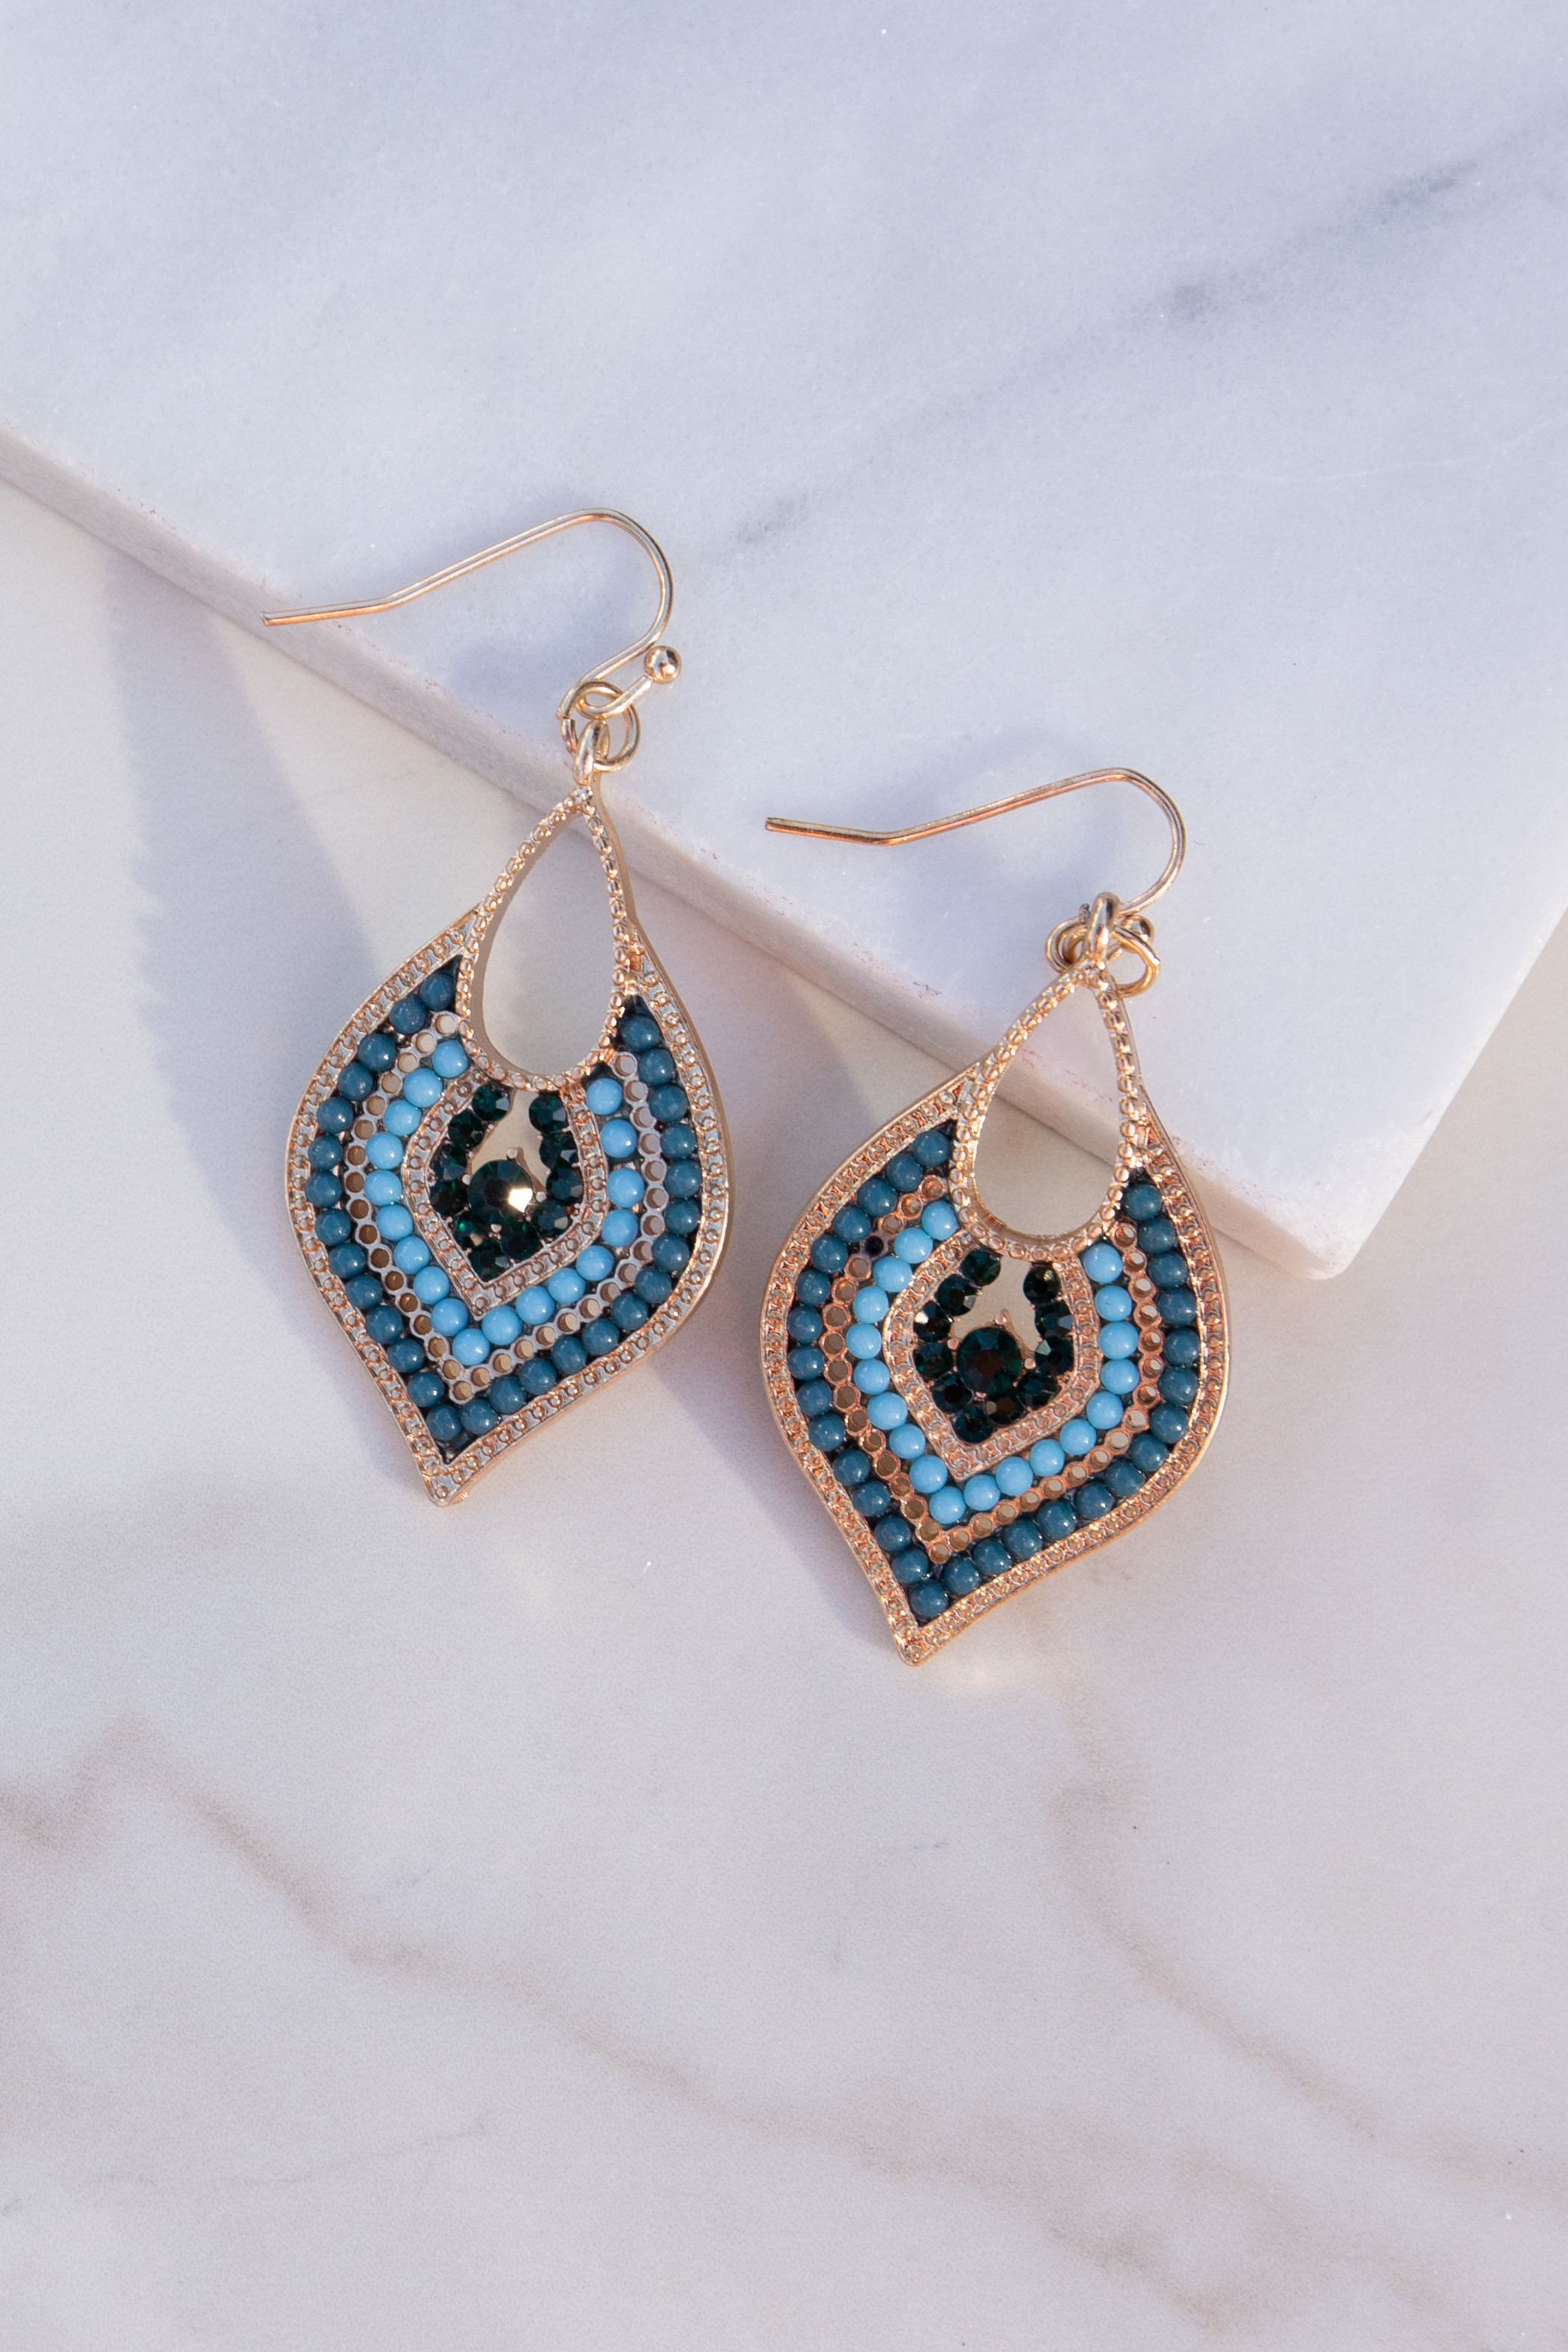 Gold Moroccan Style Dangle Earrings with Teal Bead Details